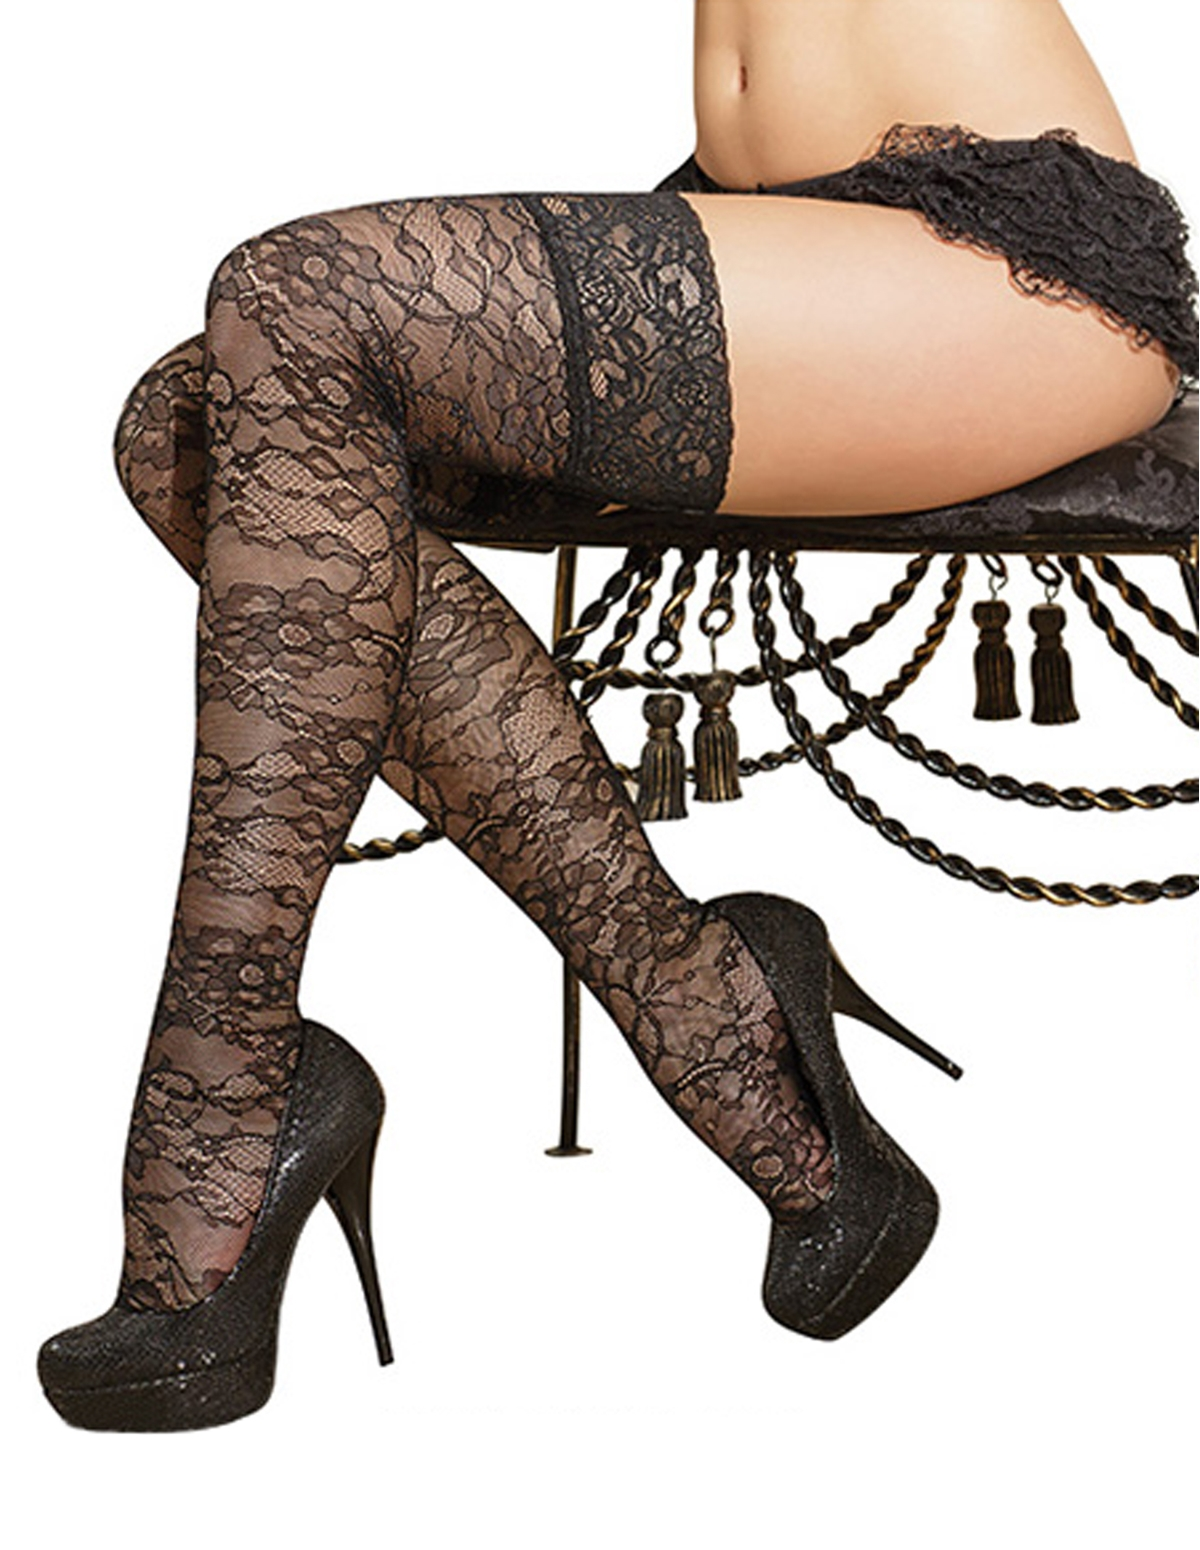 All Lace Stocking